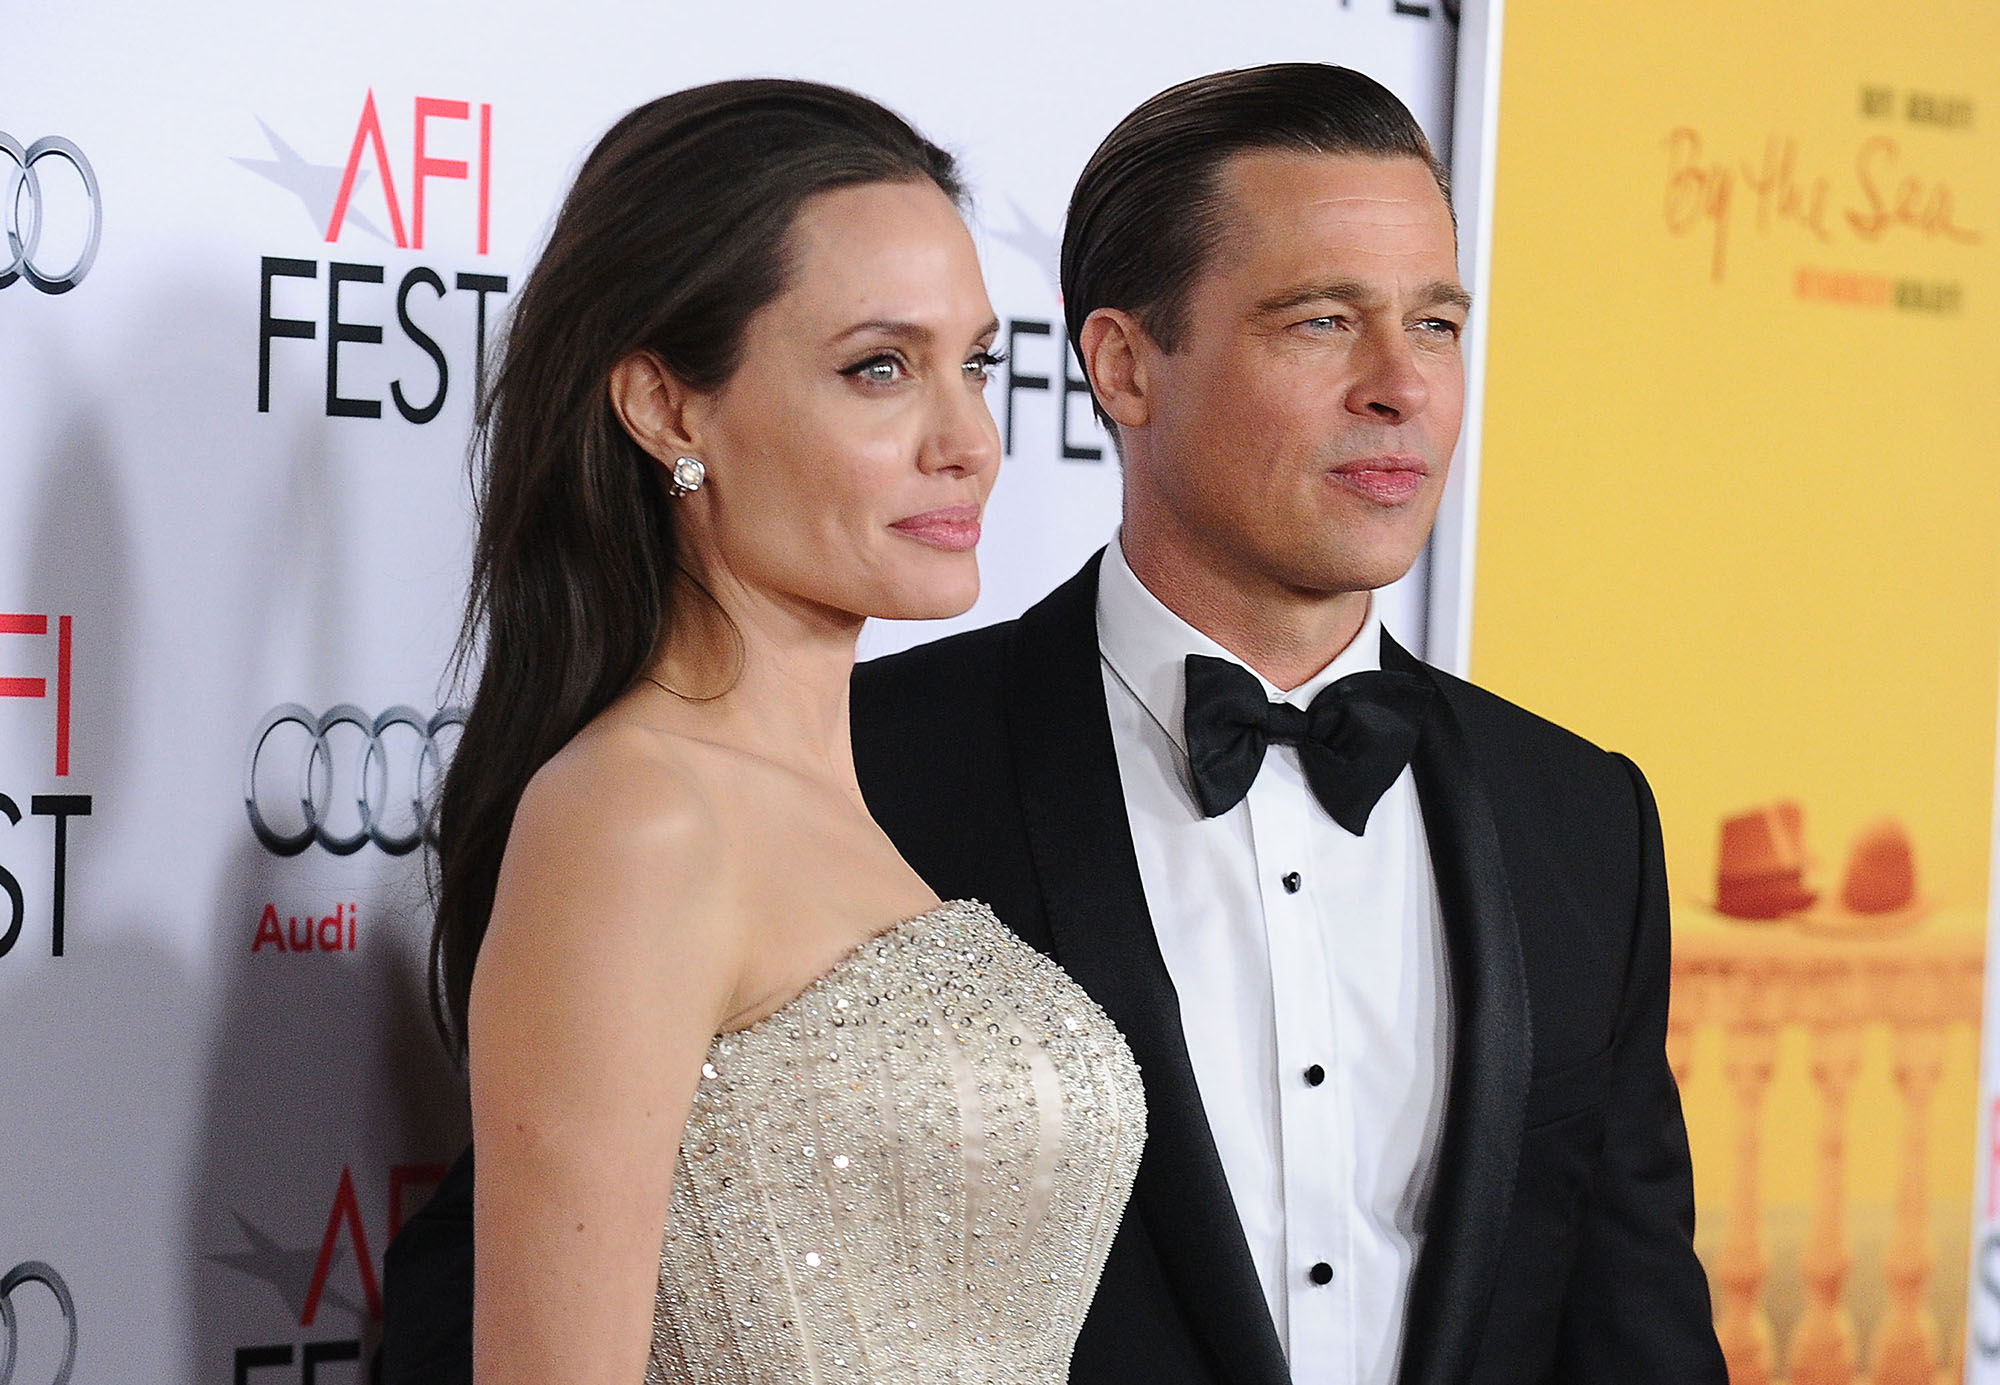 Angelina Jolie and Brad Pitt attend the premiere of  By the Sea  at the 2015 AFI Fest at TCL Chinese 6 Theatres on November 5, 2015 in Hollywood, California.  (Photo by Jason LaVeris/FilmMagic)